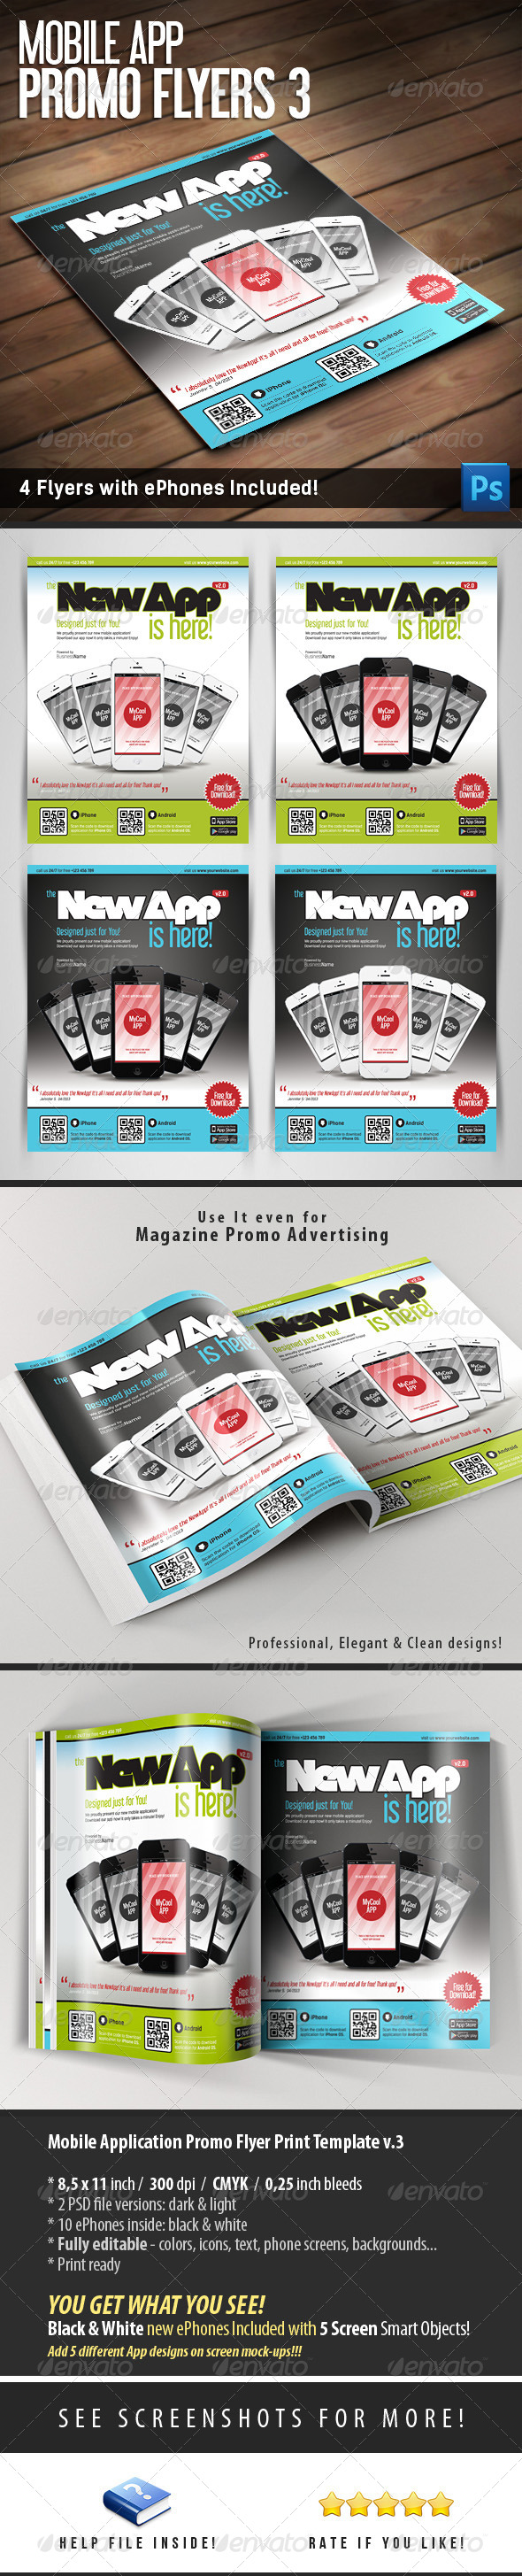 Mobile App Flyers Template v.3 - Commerce Flyers